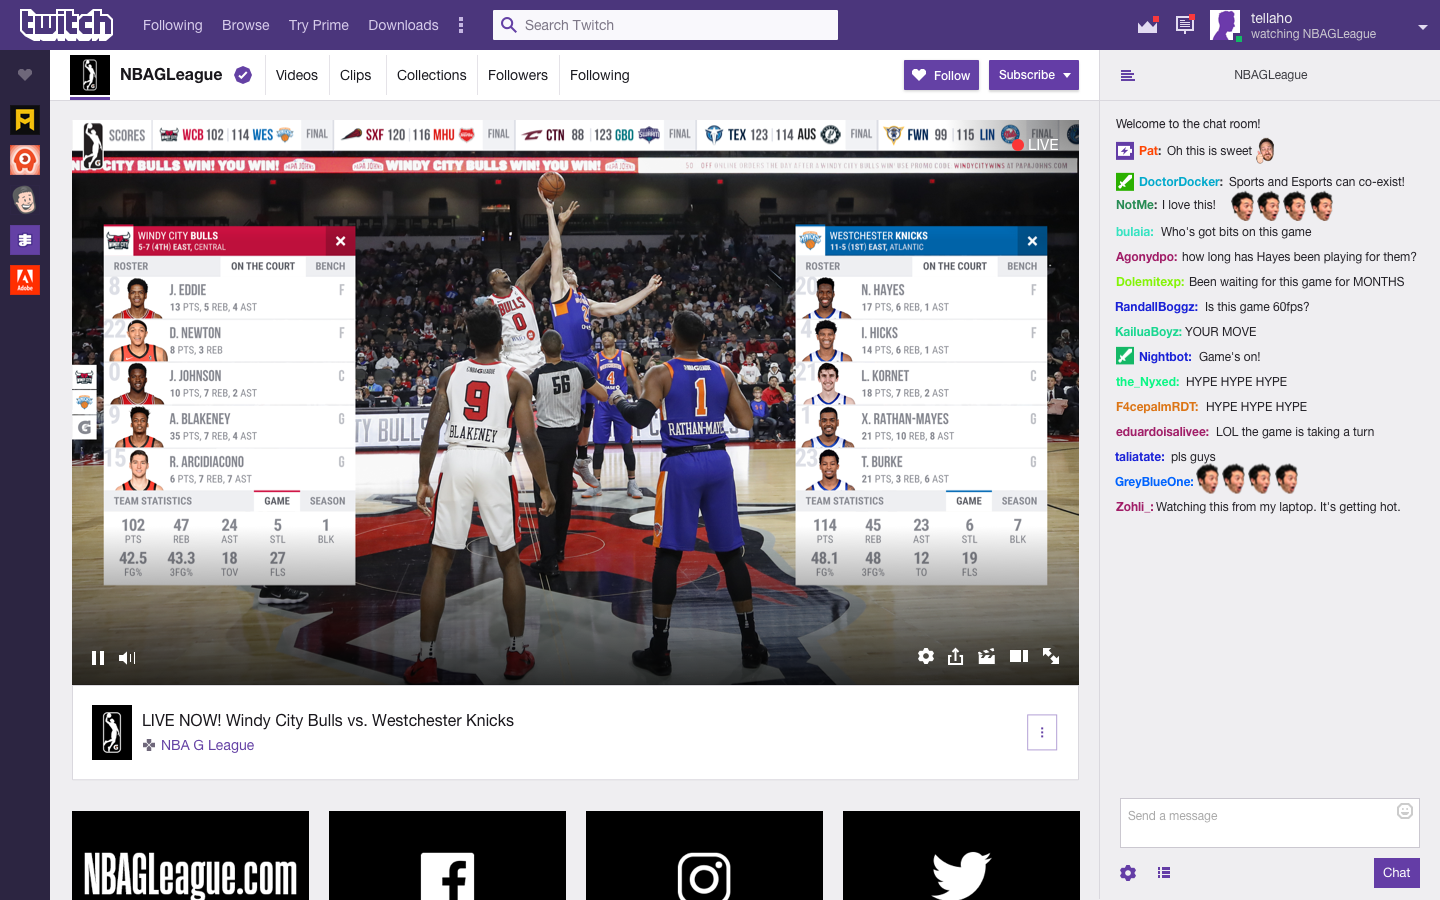 Techmeme: Twitch and NBA agree to stream up to six minor